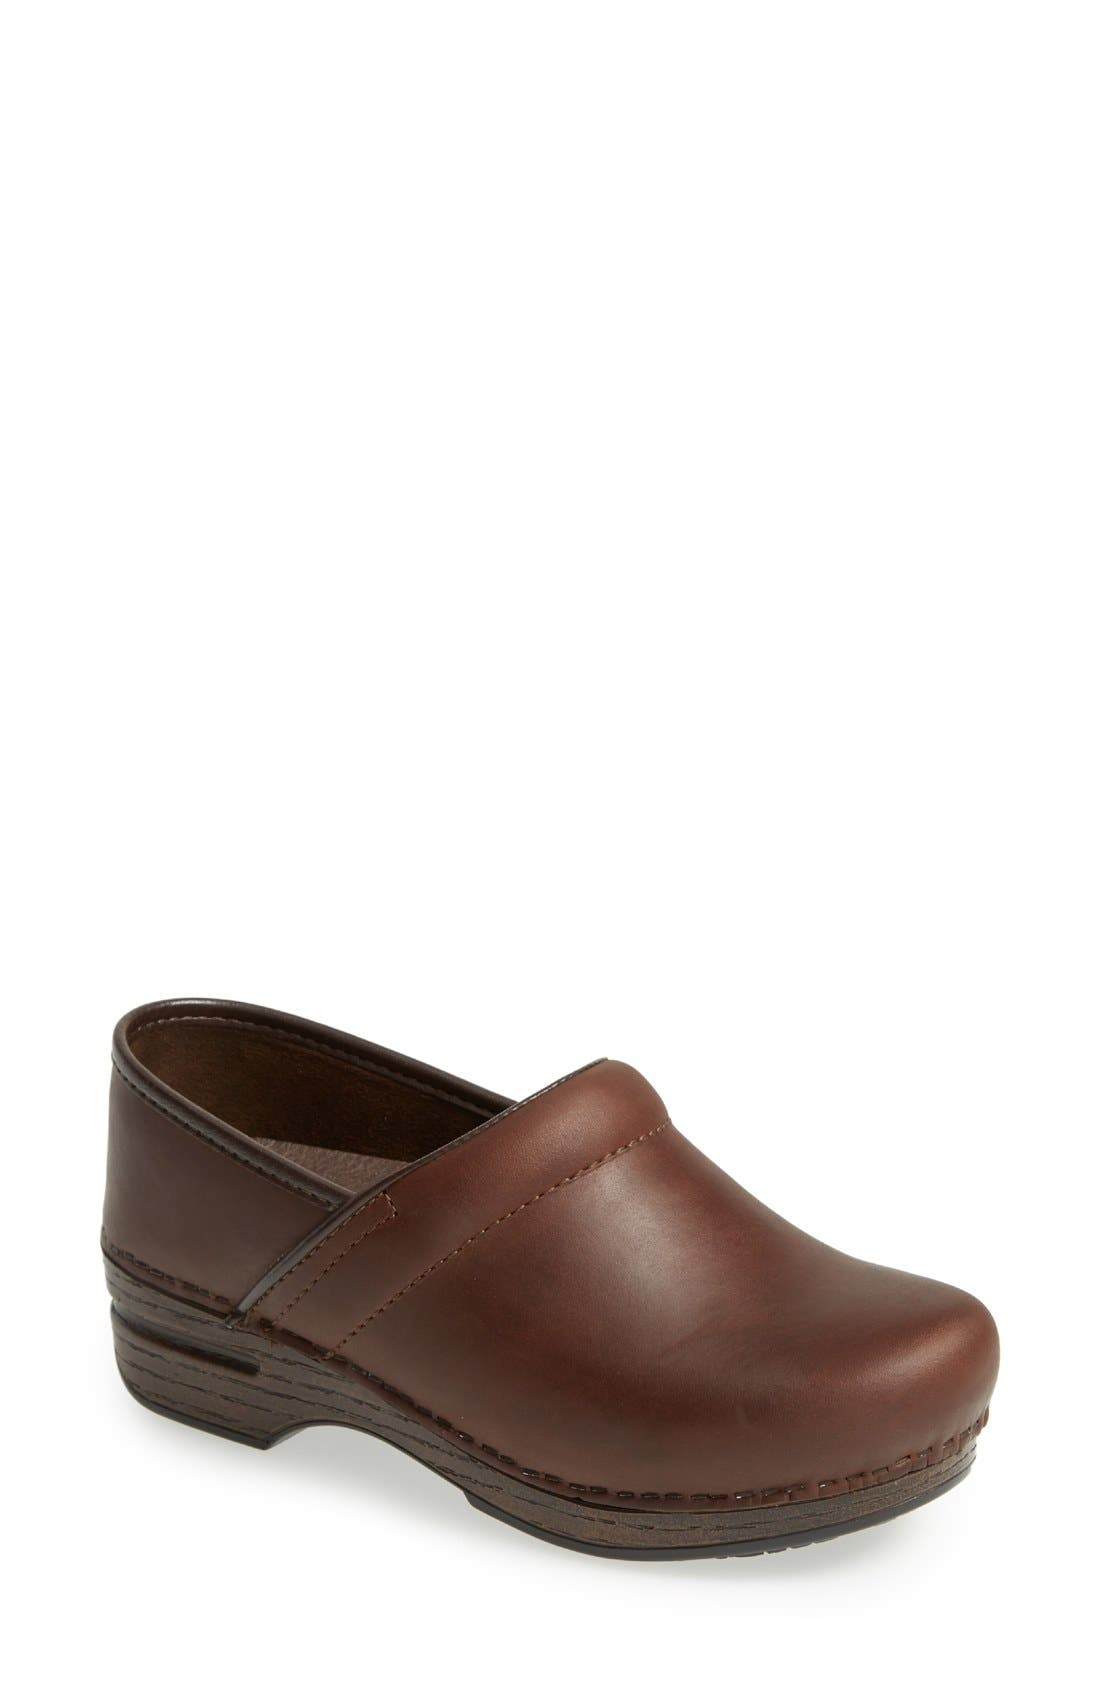 'Pro XP' Clog,                             Main thumbnail 1, color,                             Brown Oiled